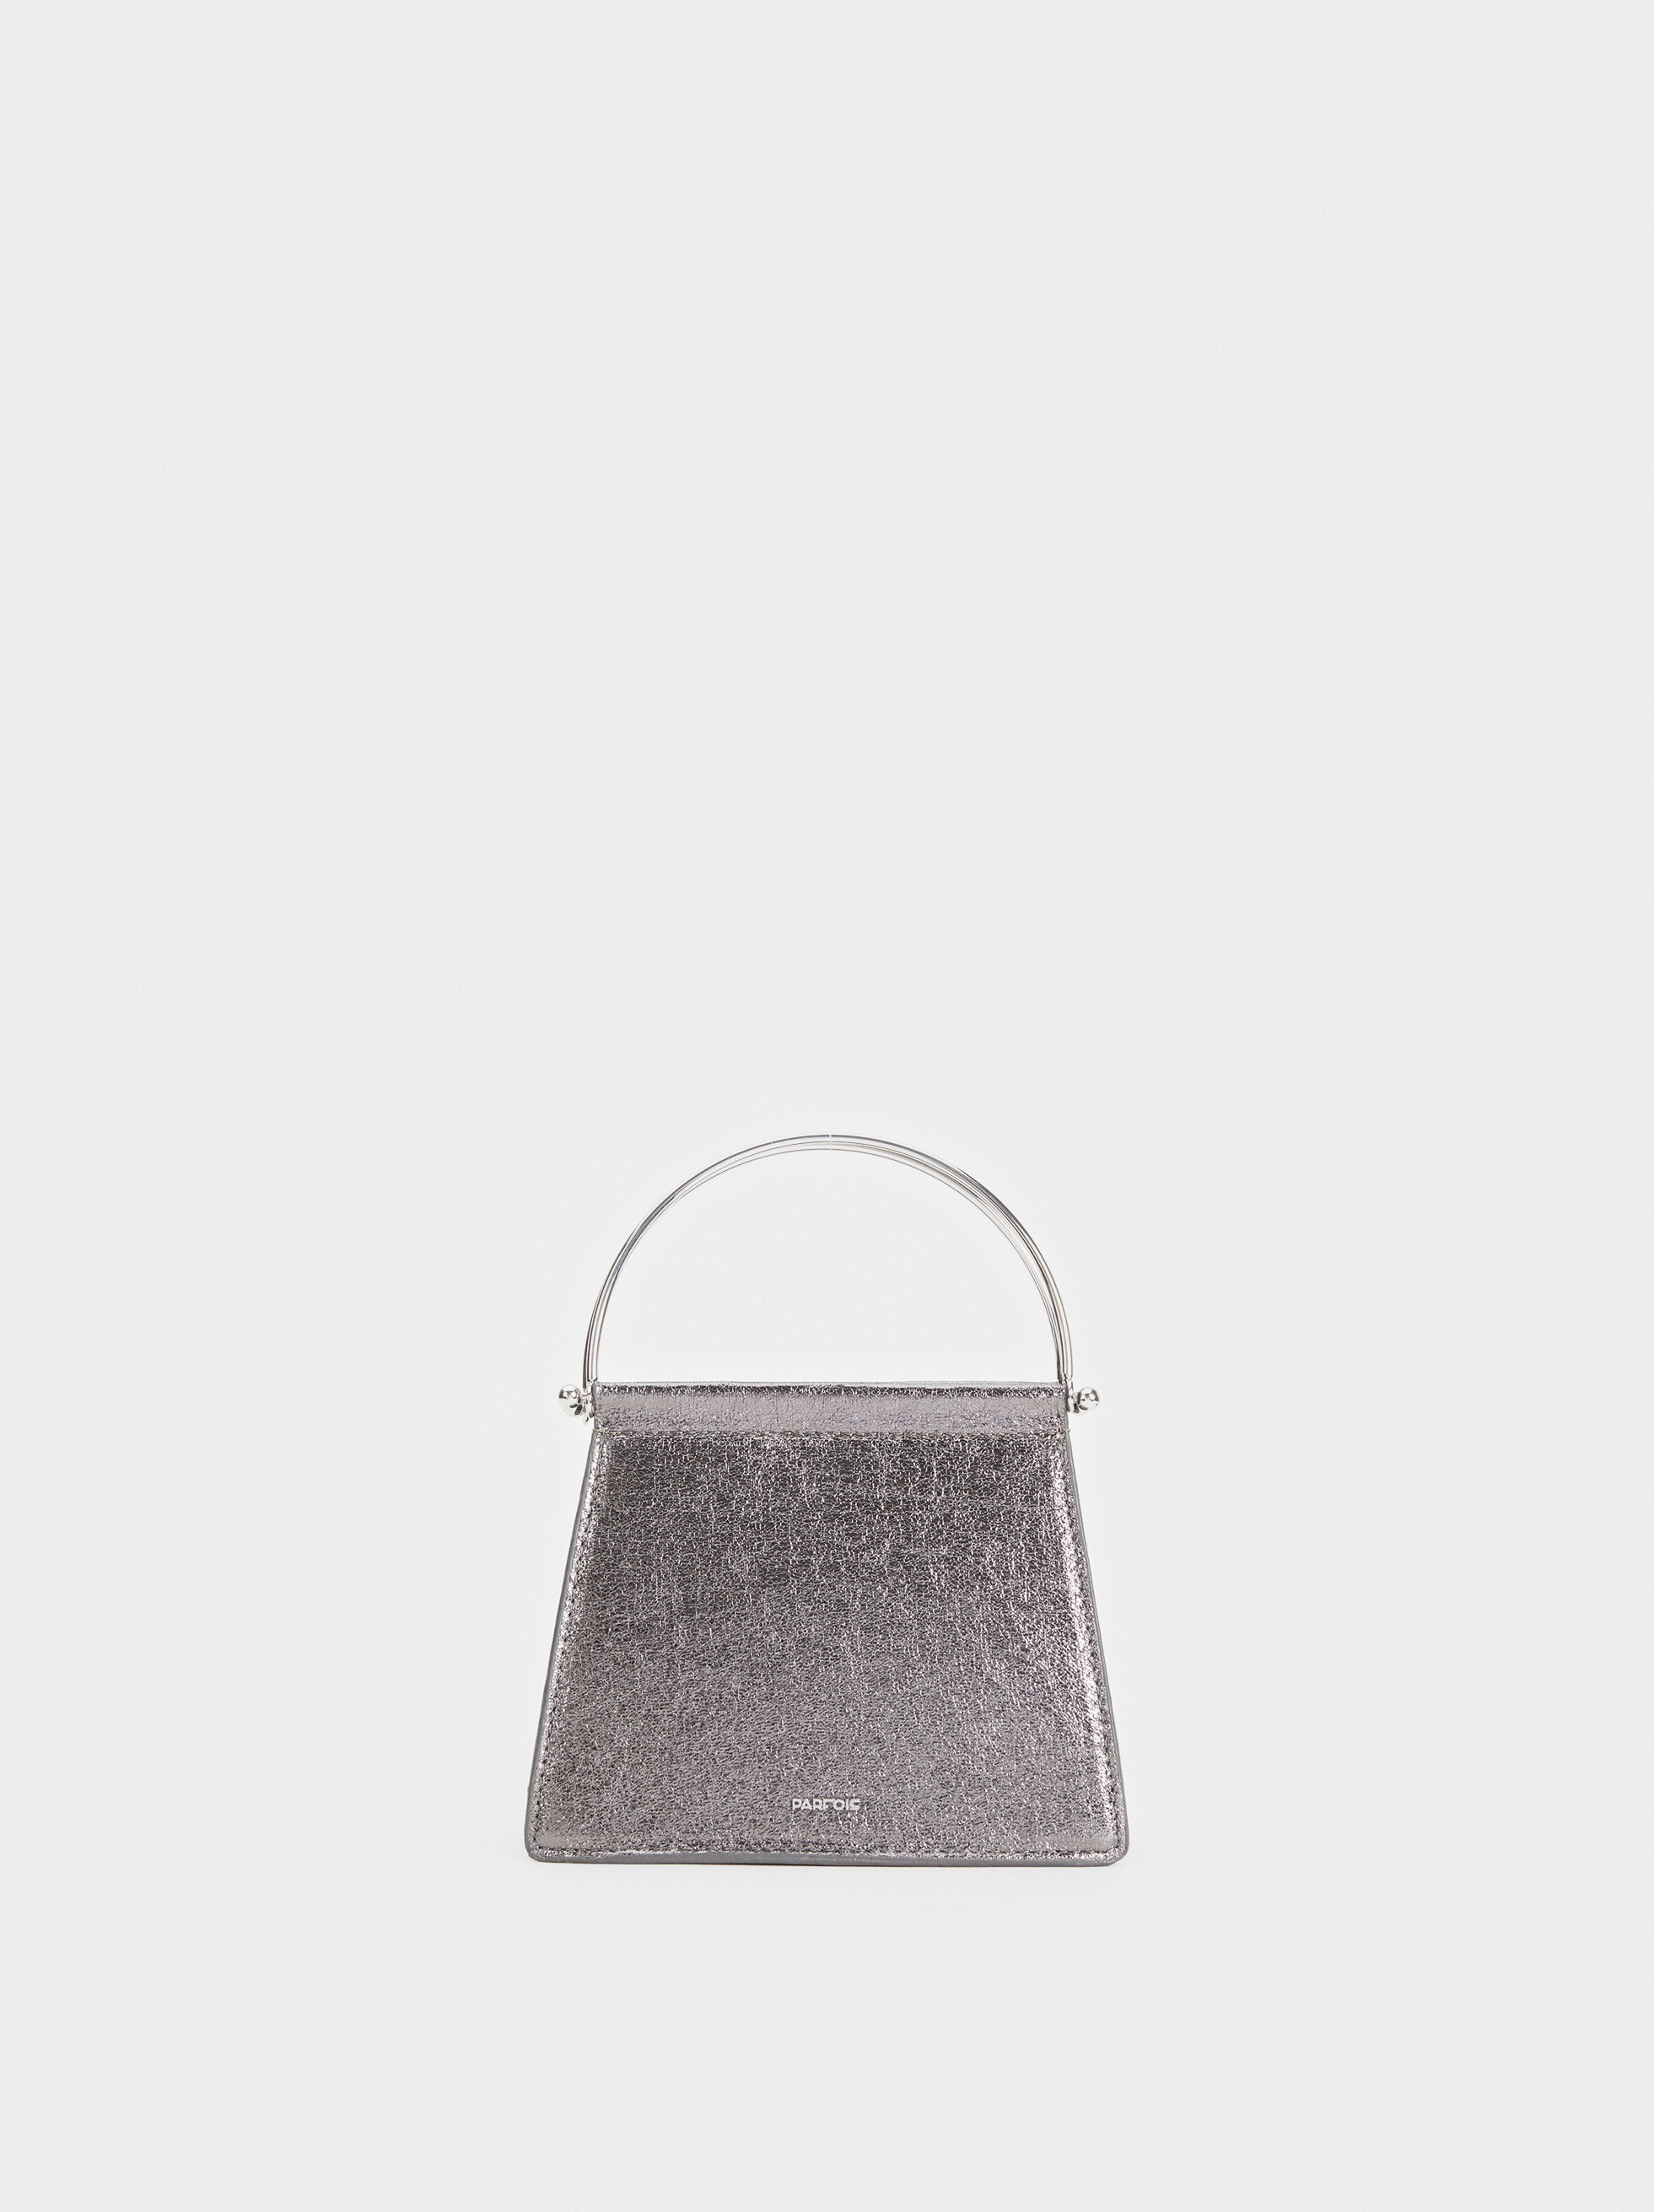 Party Clutch With Metal Handle, Silver, hi-res